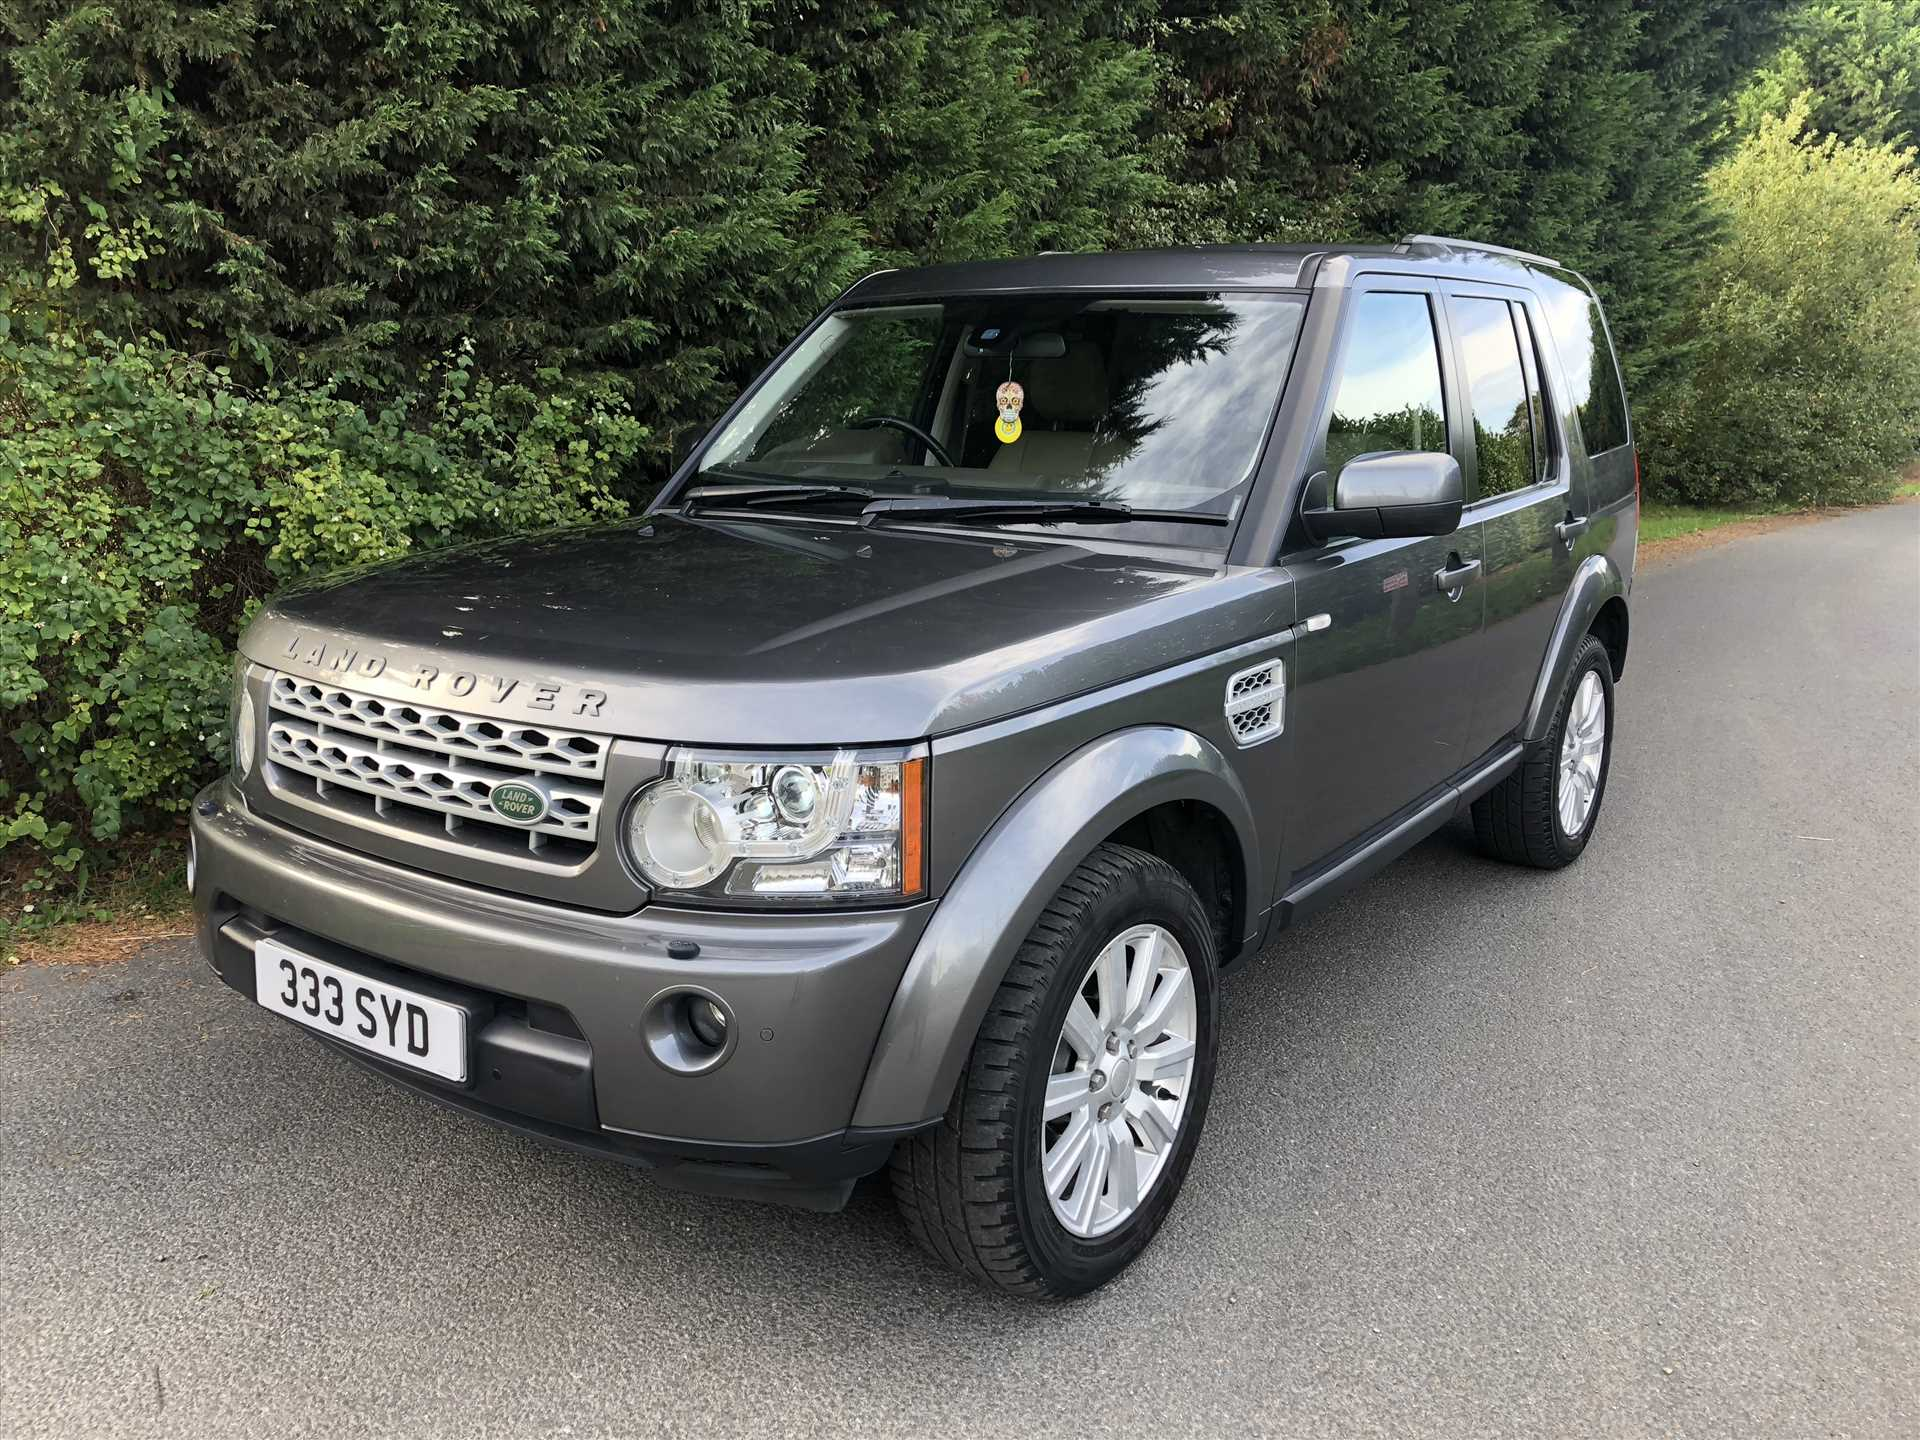 land rover discovery 4 xs 3 0 sdv6 automatic 4x4 7 seater. Black Bedroom Furniture Sets. Home Design Ideas